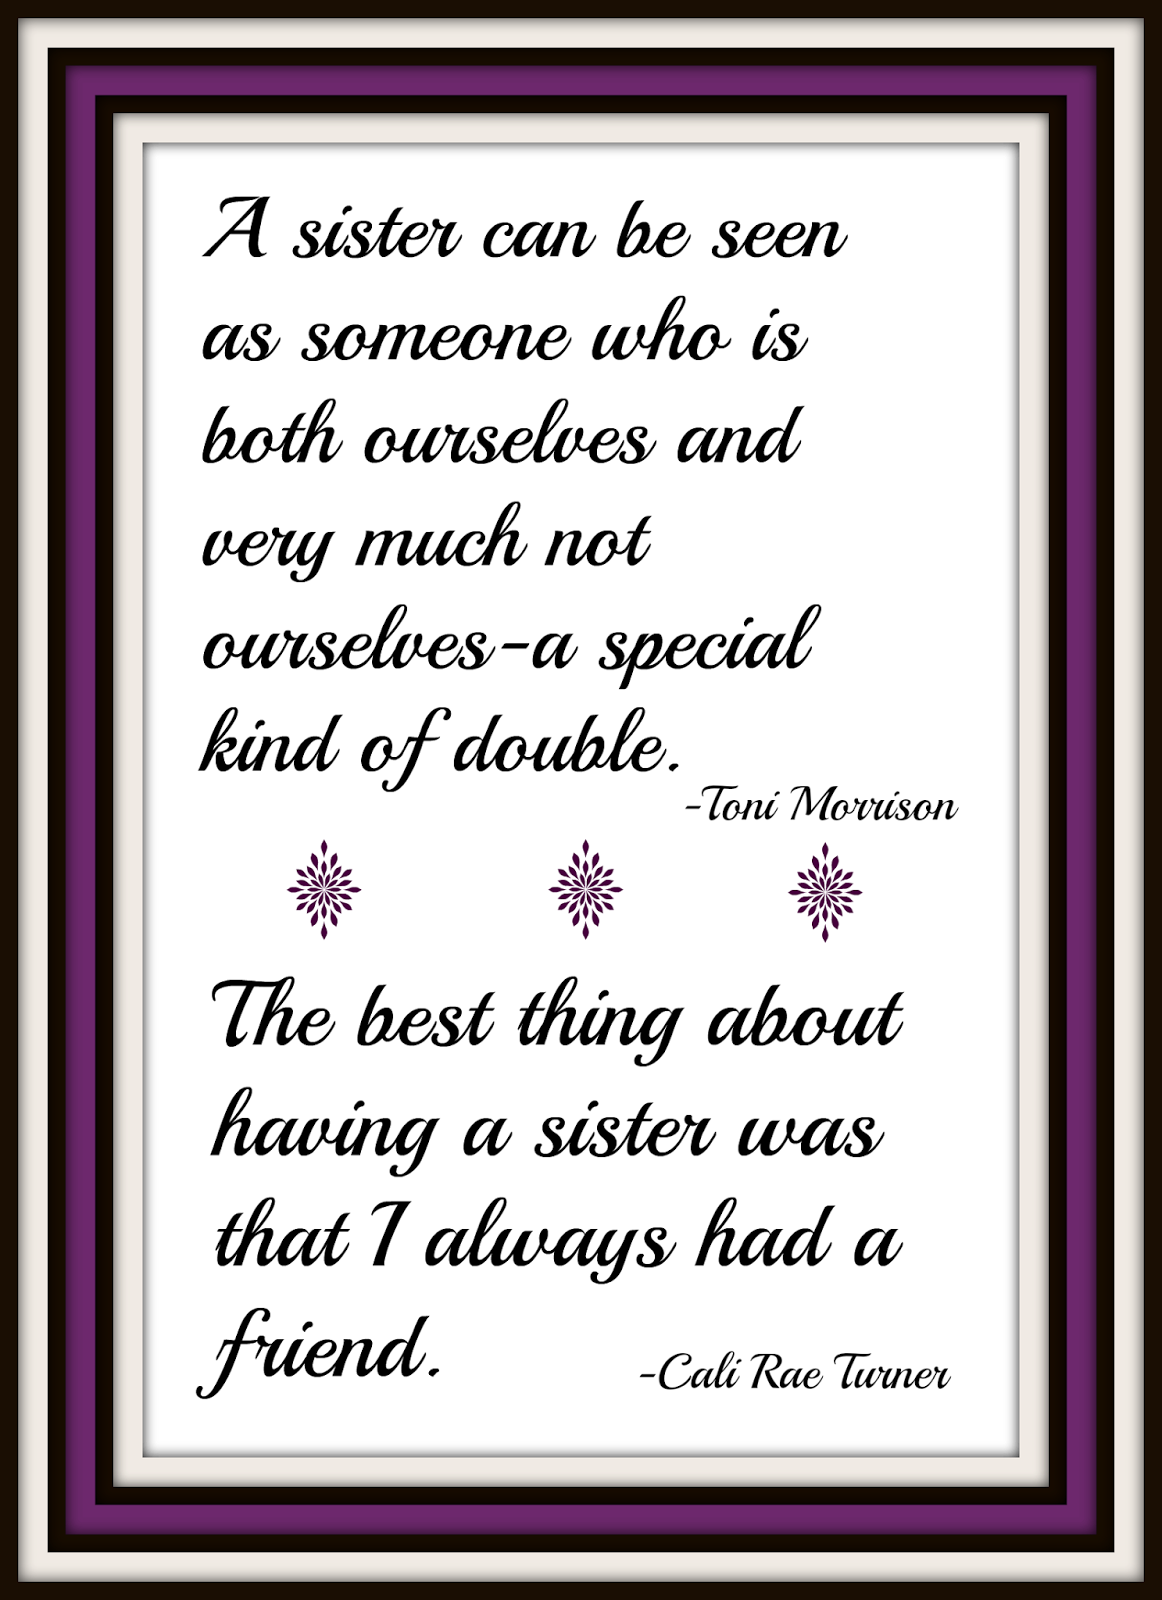 I Love My Twin Sister Quotes Normal Everyday Life February 2015